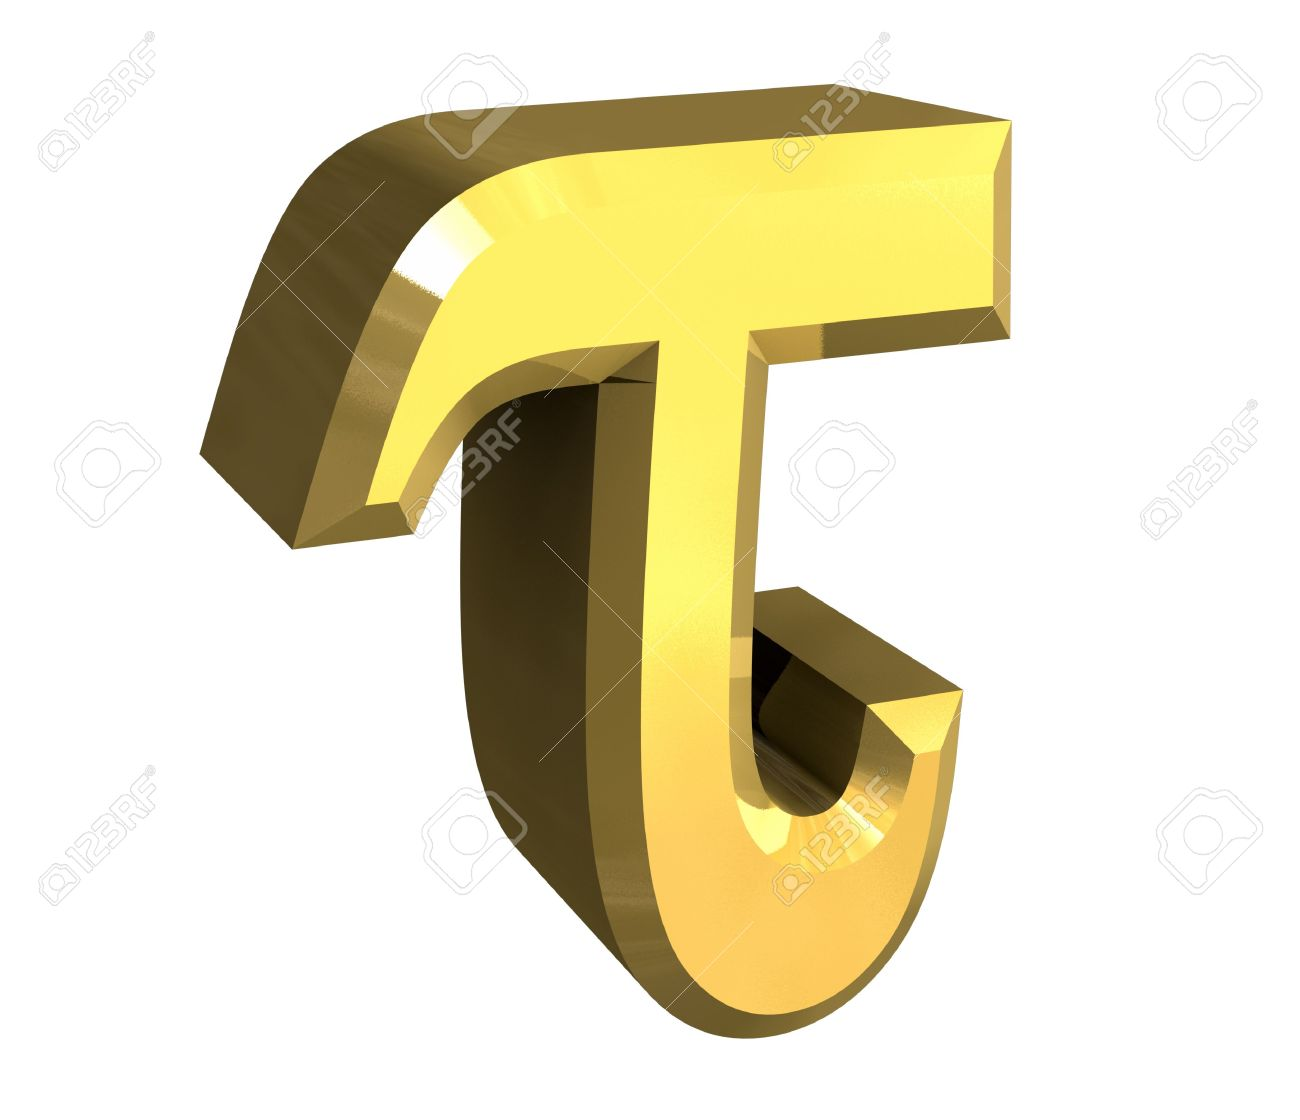 Tau symbol in gold 3d stock photo picture and royalty free tau symbol in gold 3d stock photo 4618729 biocorpaavc Images